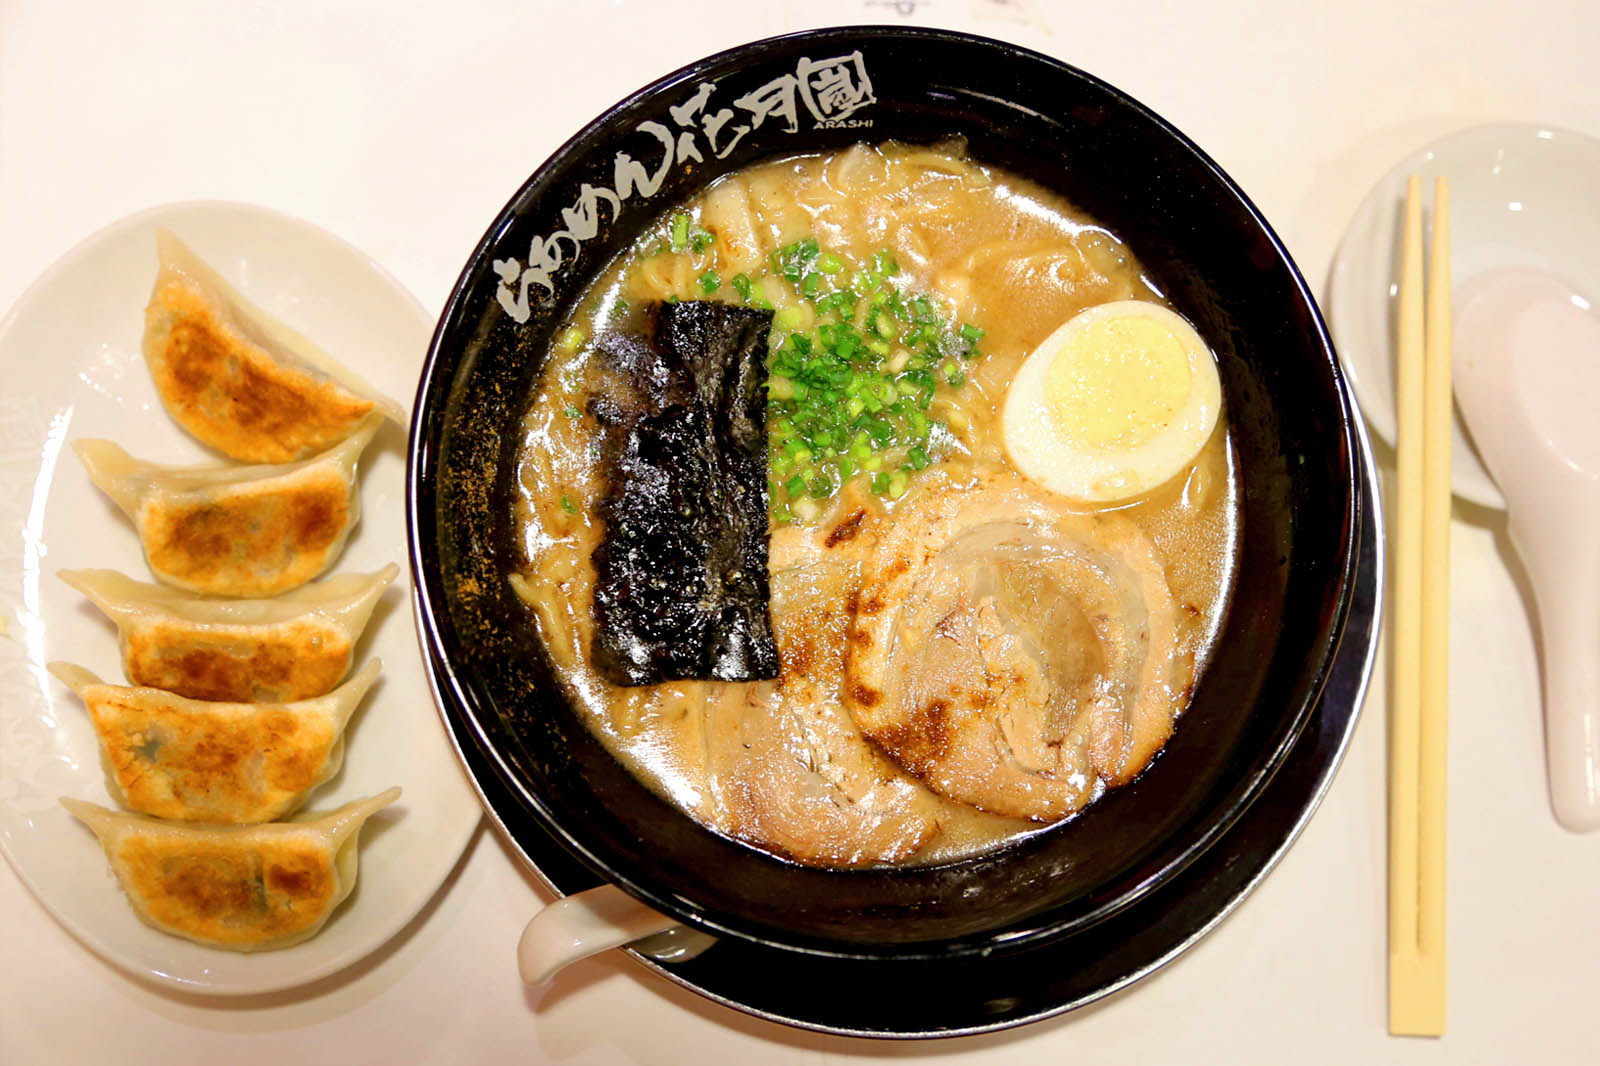 Ramen Kagetsu Arashi - Tonkotsu Ramen Shop at The Cathay